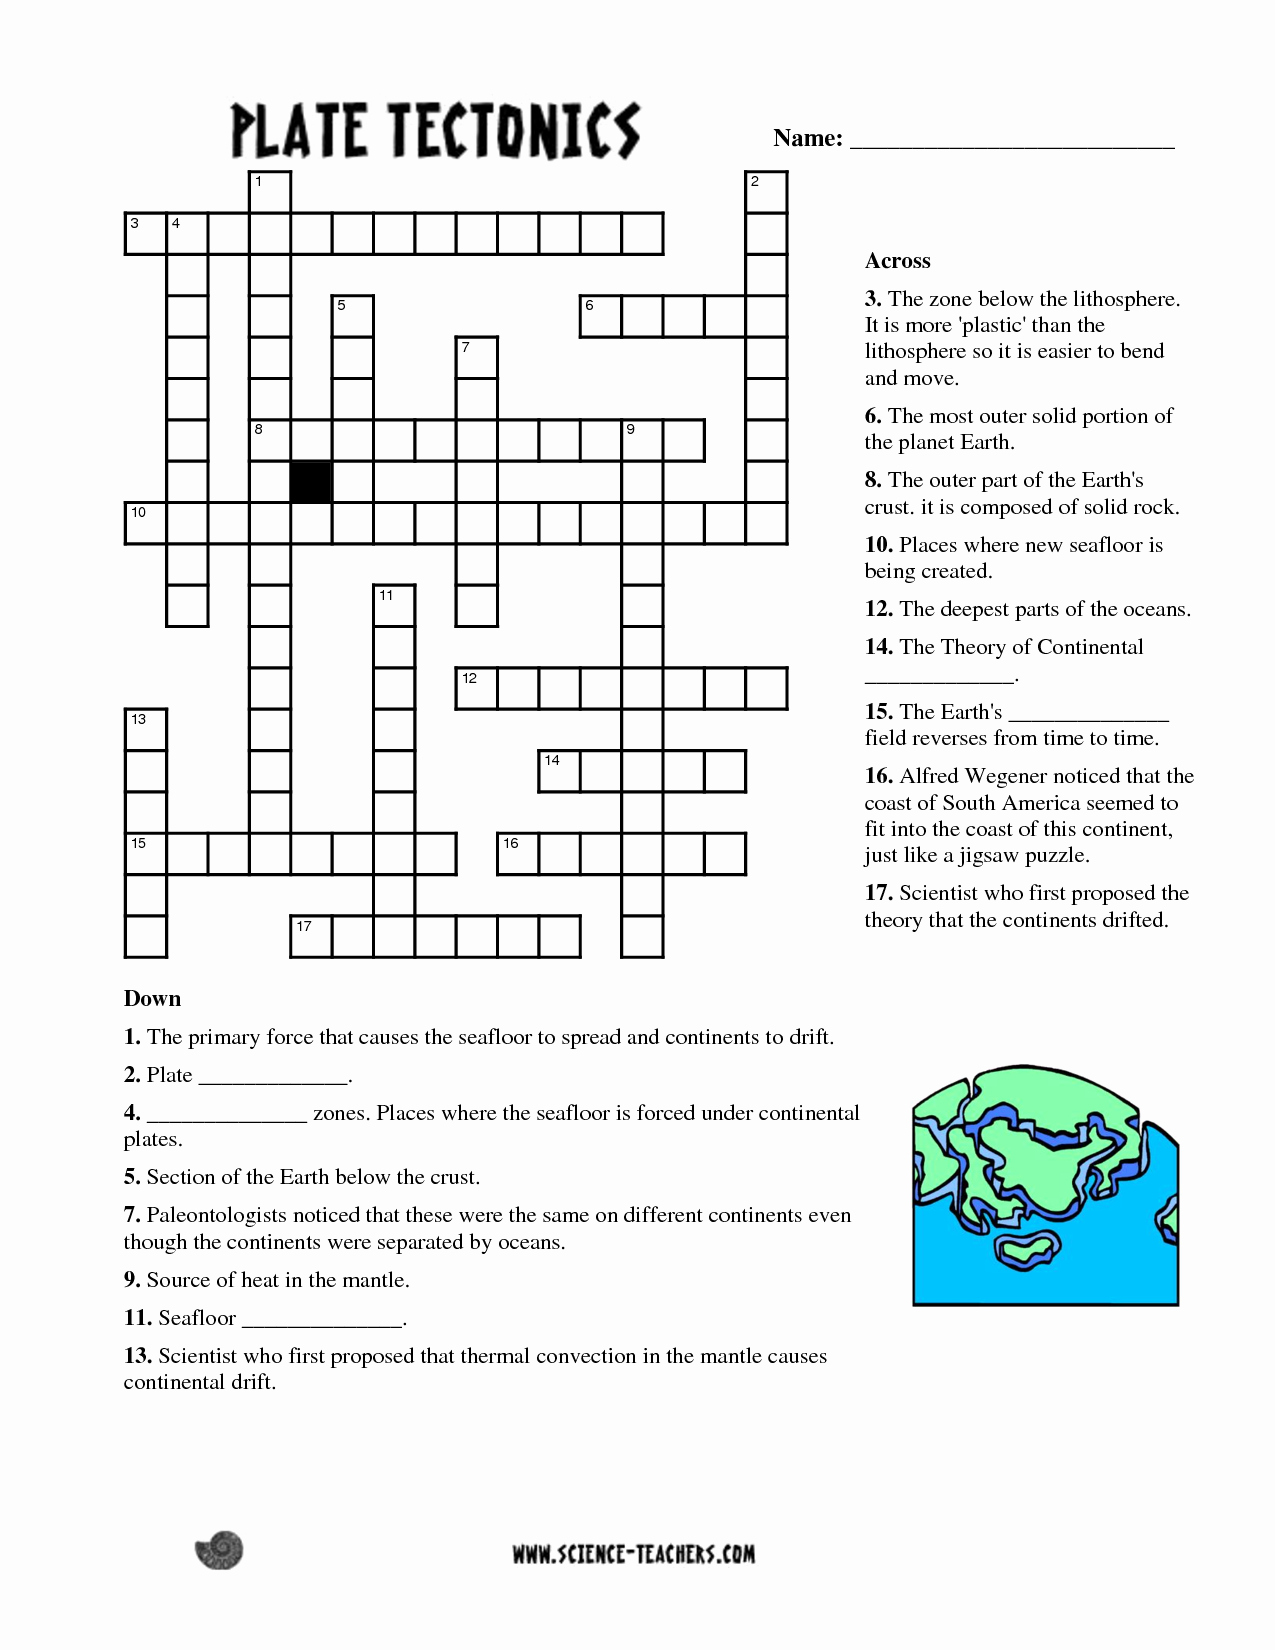 Plate Tectonics Worksheet Answer Key Fresh Planets Crossword Puzzle Worksheet Pics About Space